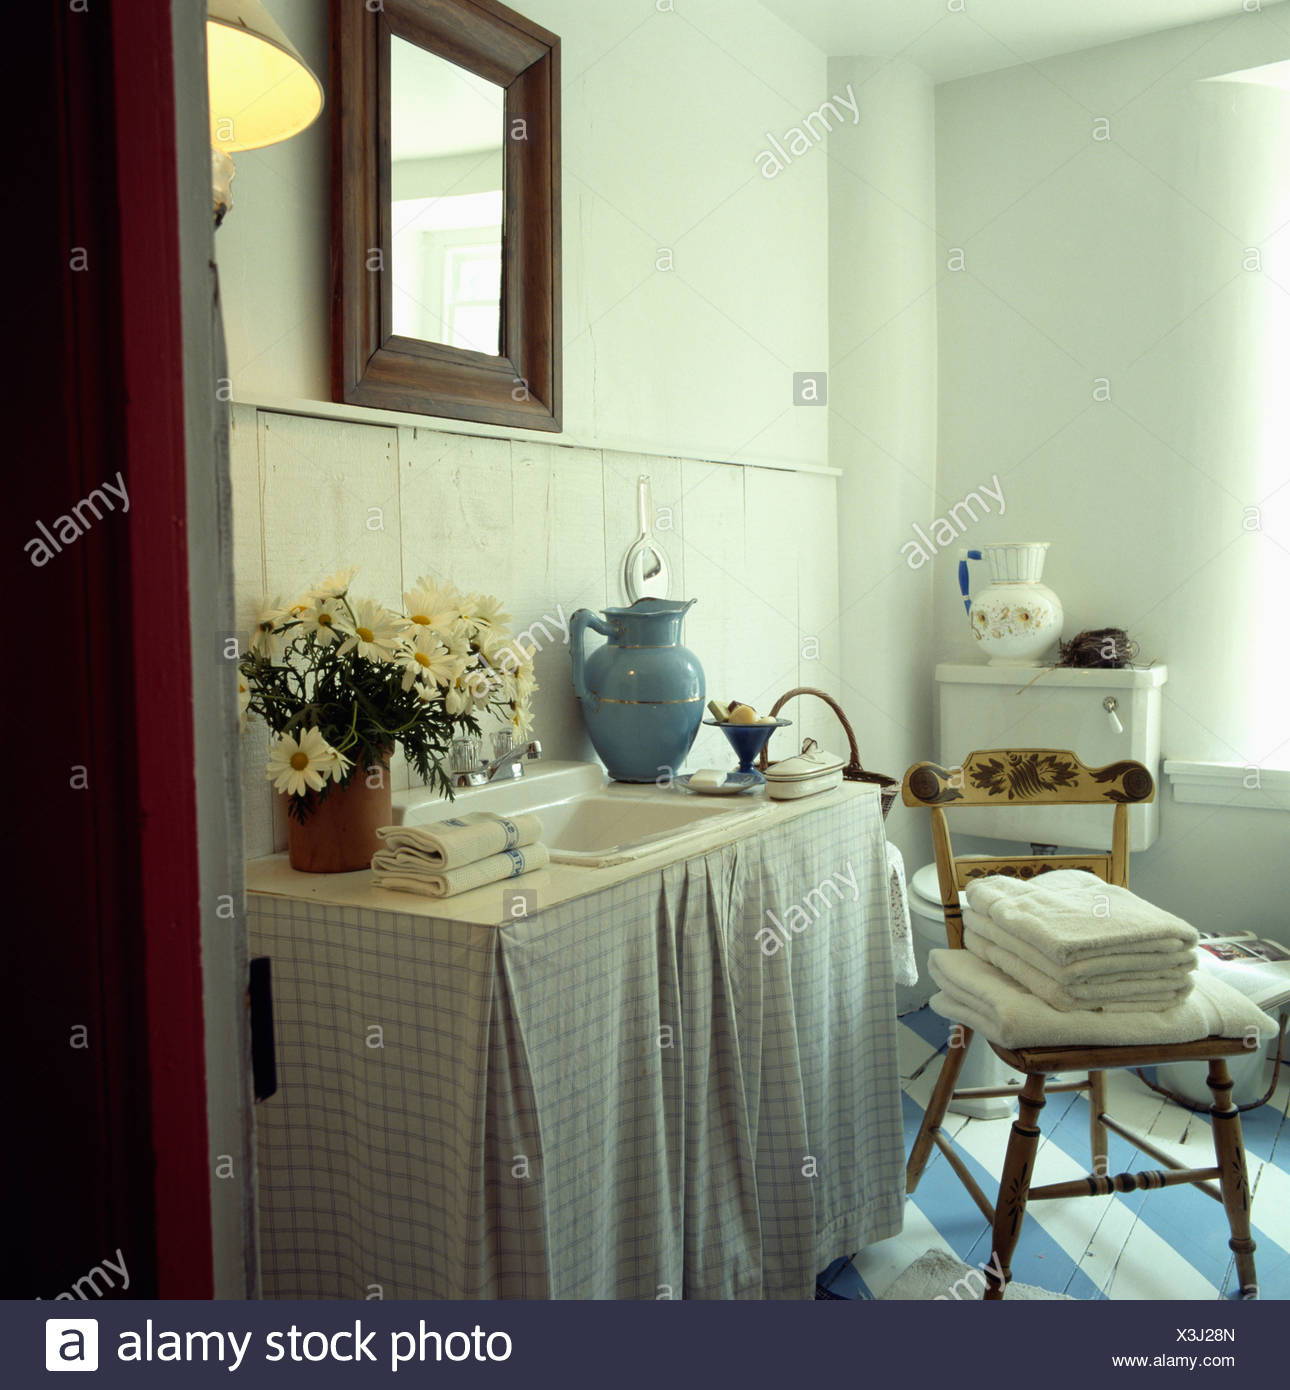 White Towels On Wooden Chair In Country Bathroom With Checked Curtains On Vanity Unit Below Basin Stock Photo Alamy